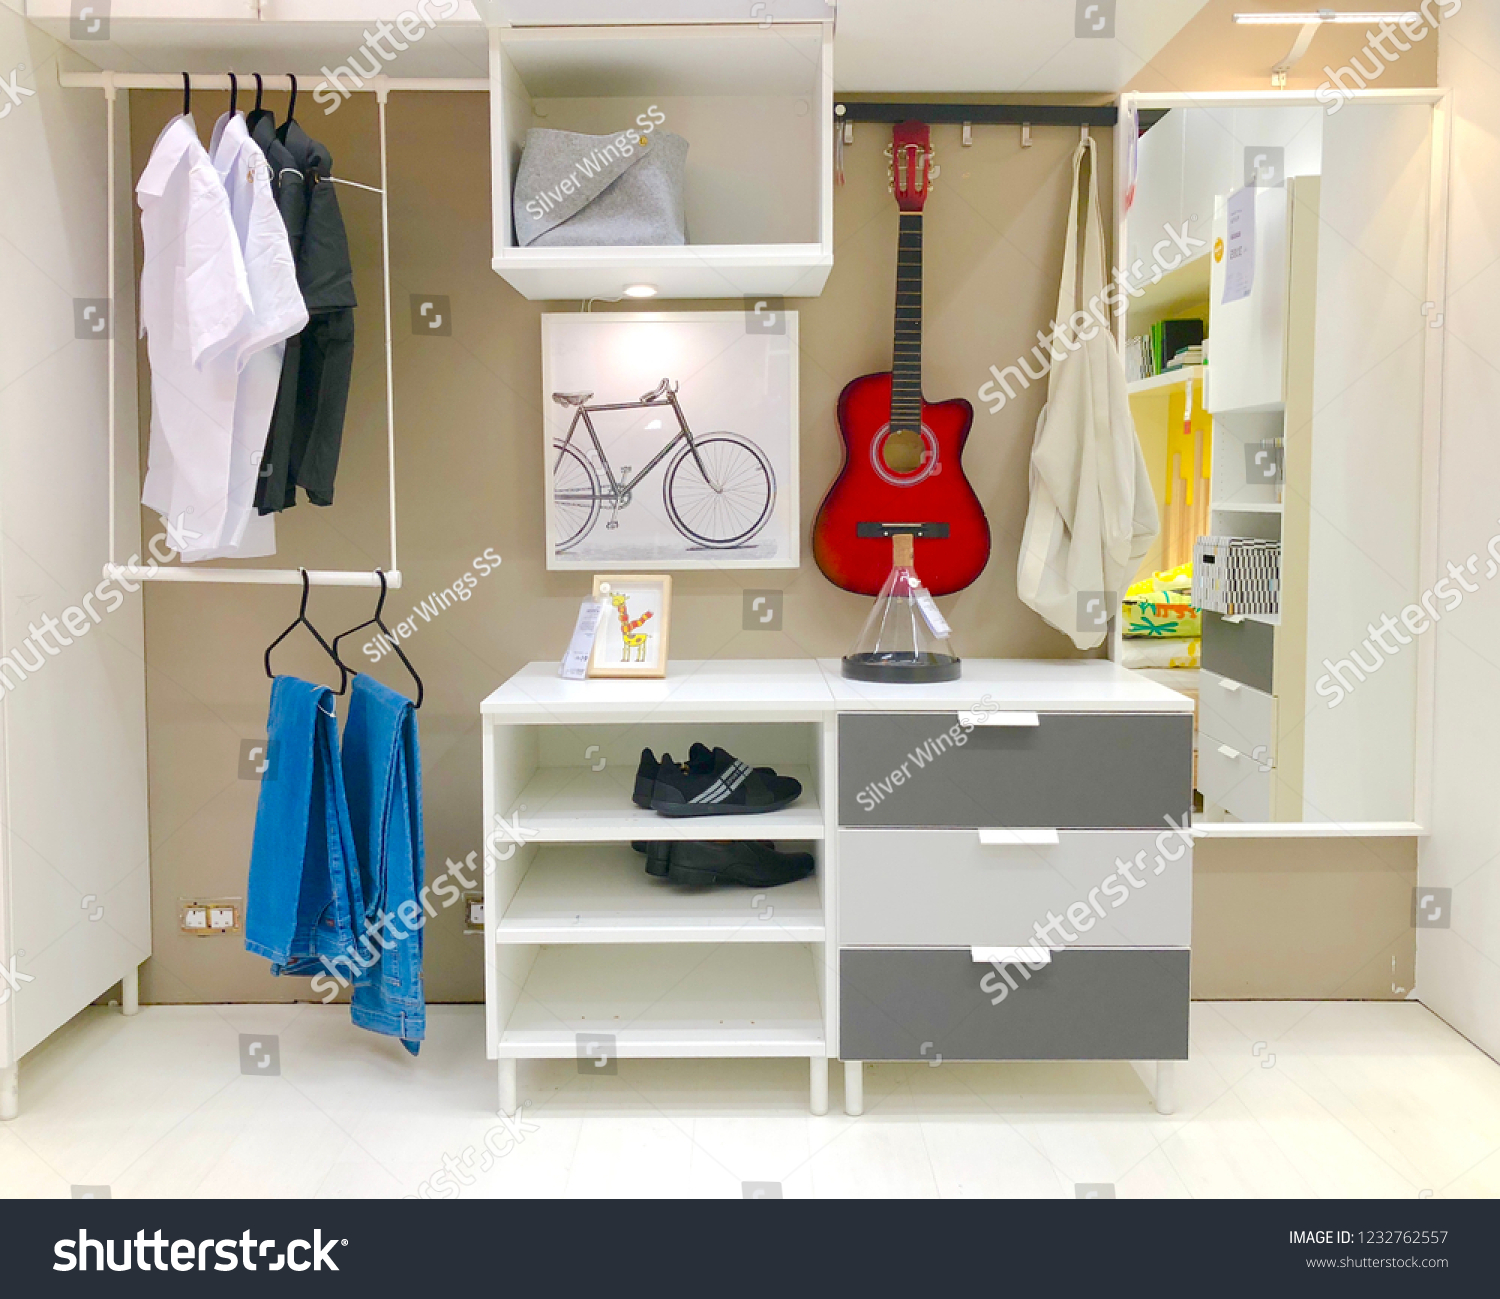 Jeddah Saudi Arabia November 16 2017 Stock Photo Edit Now 1232762557 - Ikea Wardrobe Ksa